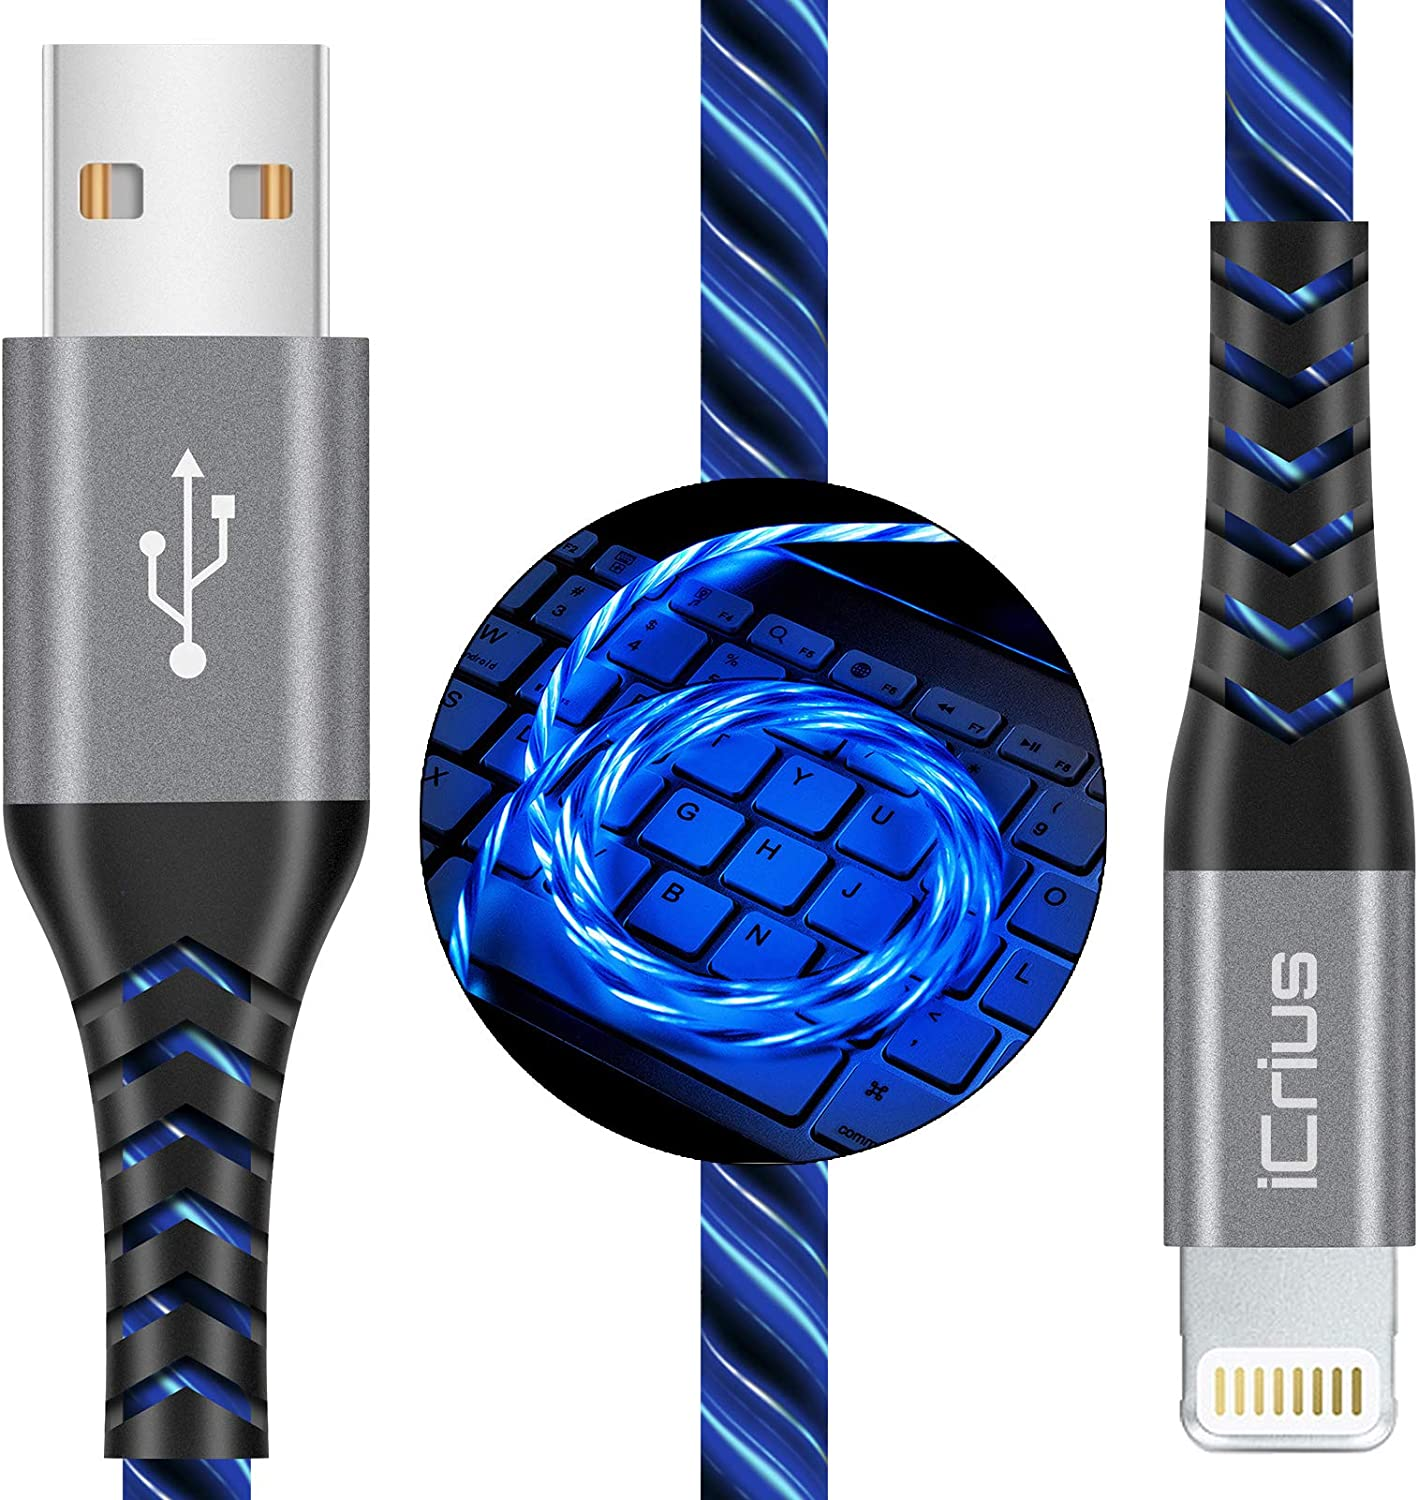 iPhone Charger, iCrius Apple MFi Certified 6FT Lightning Cable Led Light Up USB Fast Charging Cord Compatible with iPhone SE/ 11/Pro/Max/X/XS/XR/XS Max/8/Plus/7/7 Plus/6/6S/6 Plus, iPod Touch (Blue)